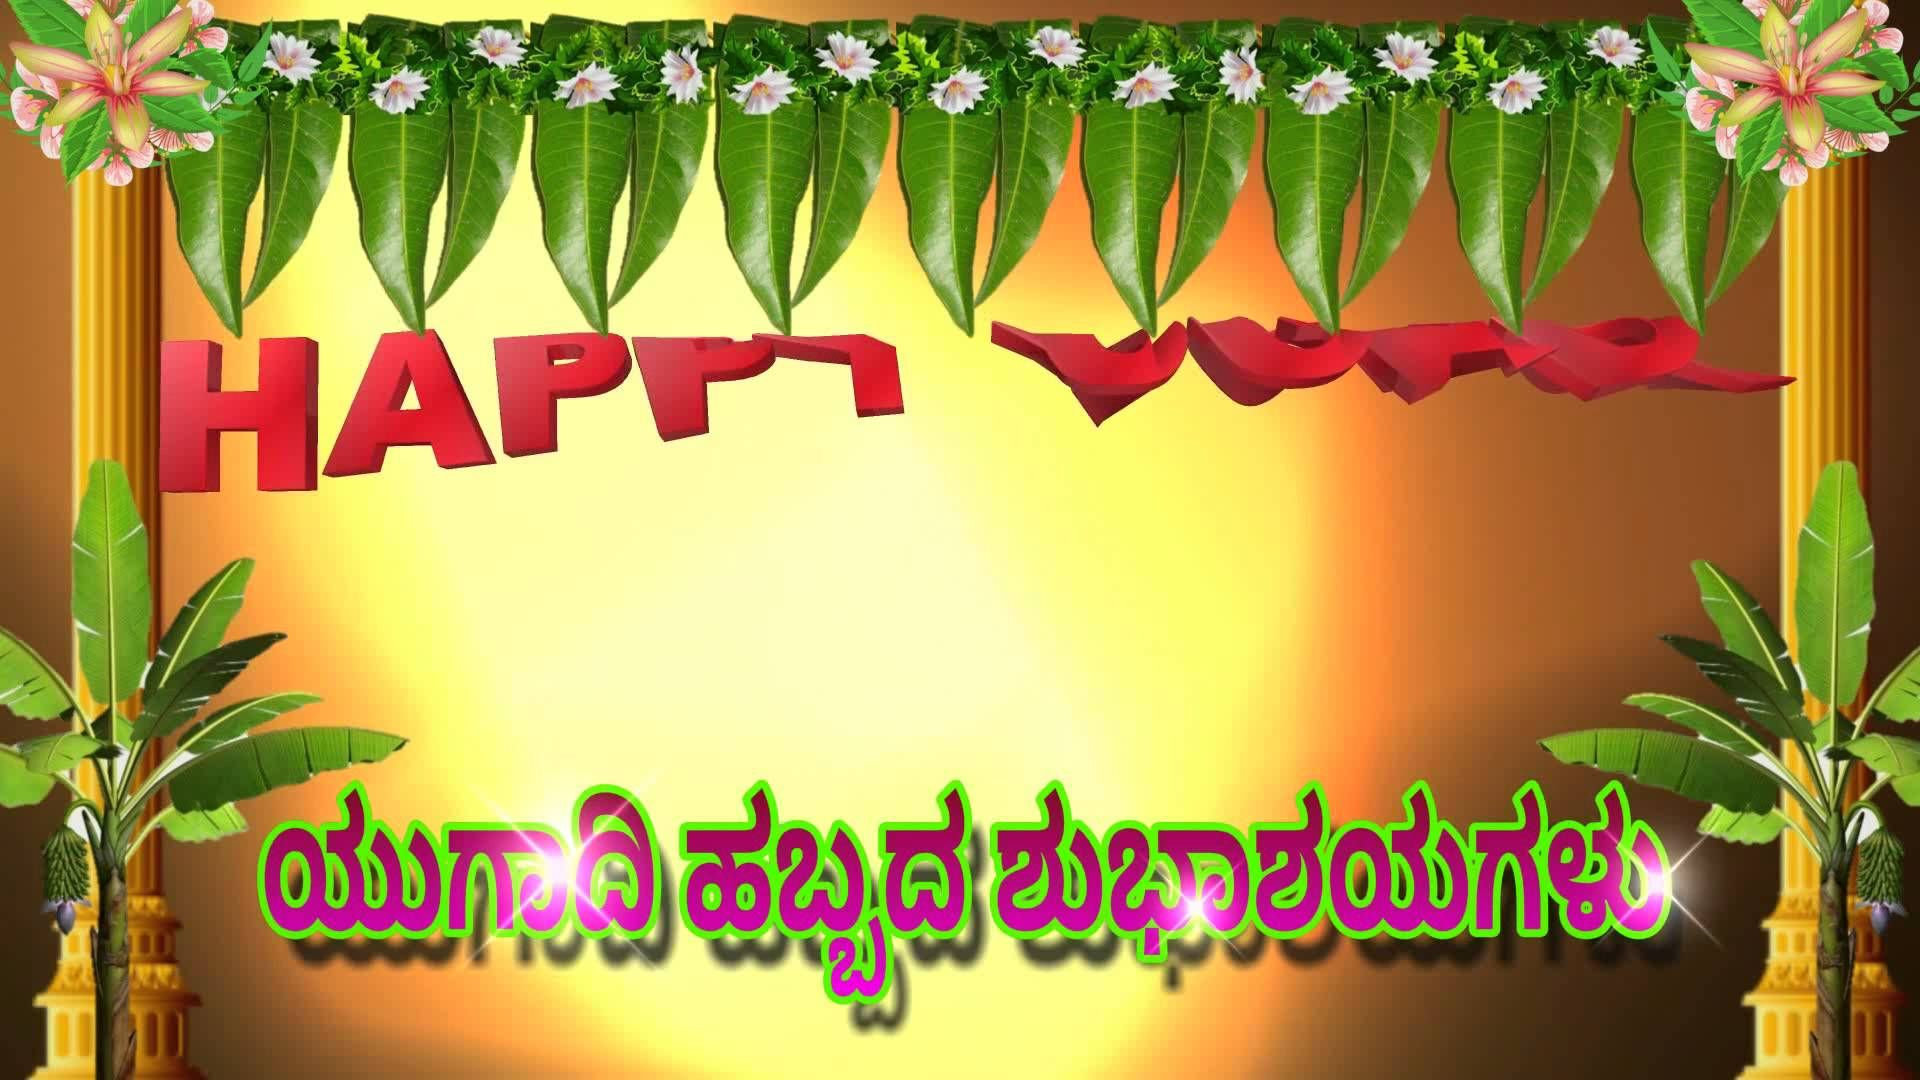 Happy ugadi 2016 wishes in kannada ugadi kannada greetings kannada happy ugadi 2016 wishes in kannada ugadi kannada greetings kannada uga ugadi kannada video greetings pinterest kristyandbryce Images